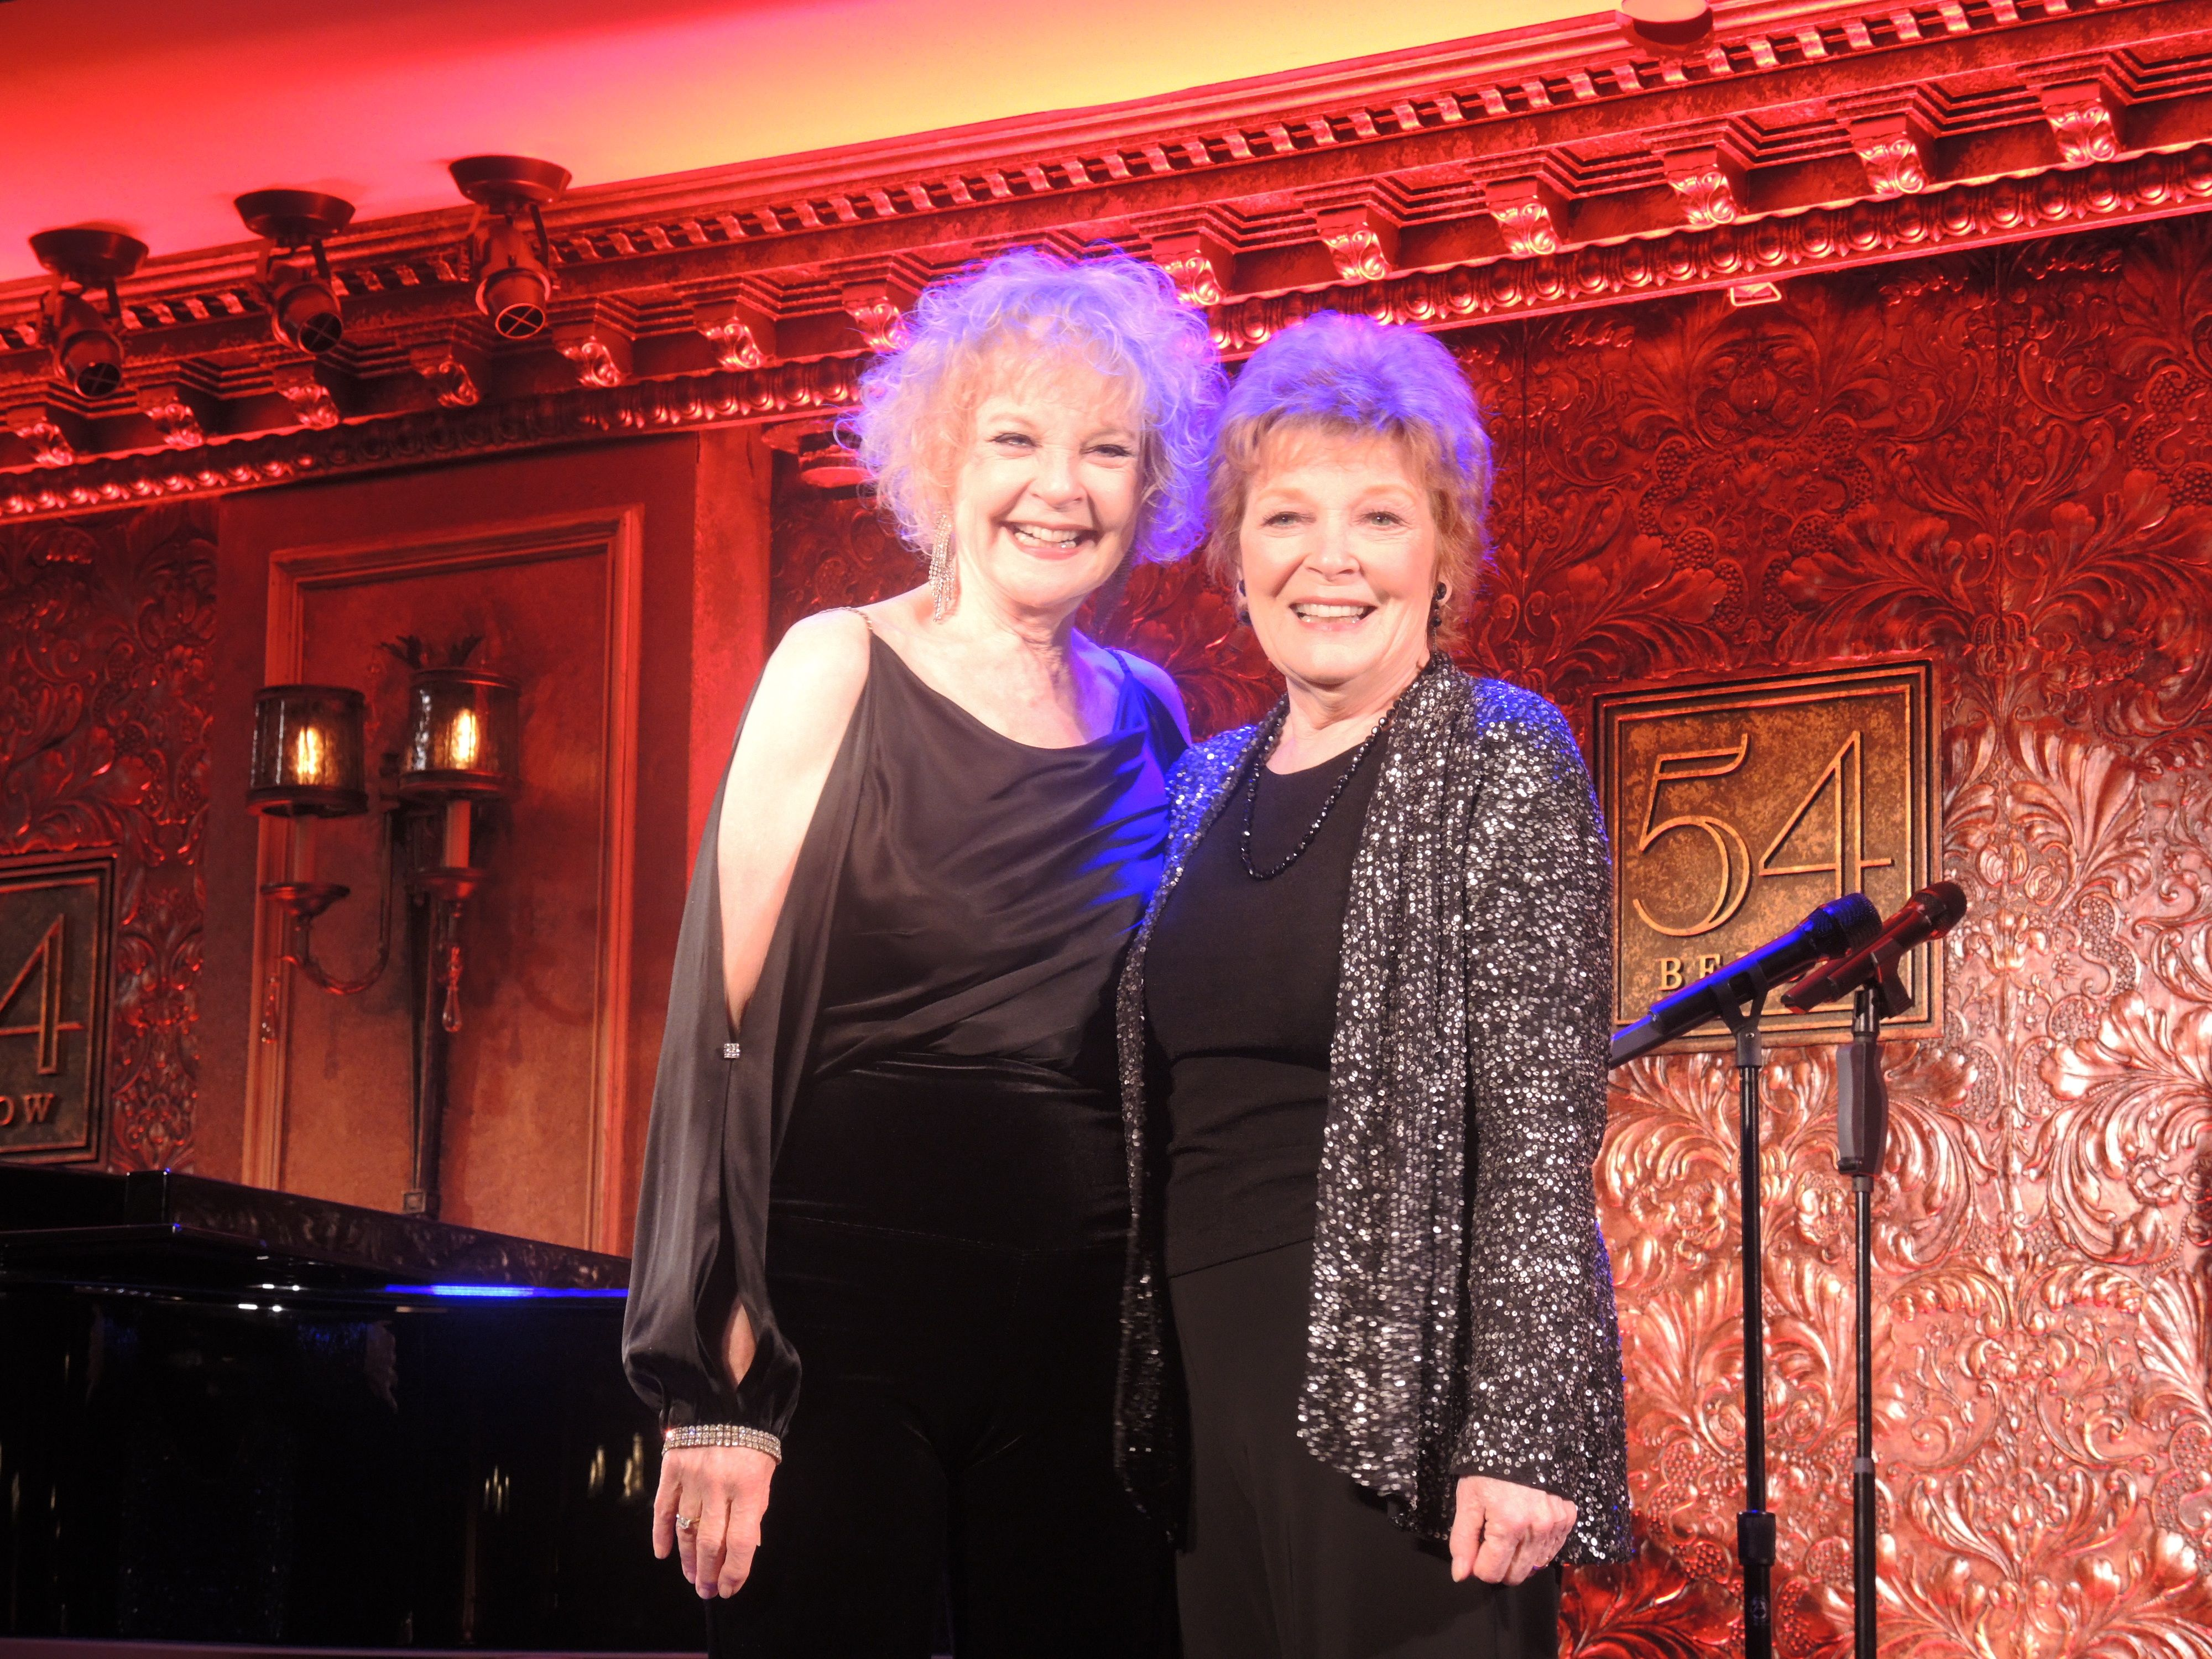 Anita Gillette & Penny Fuller – Sin Twisters at 54 Below (video)